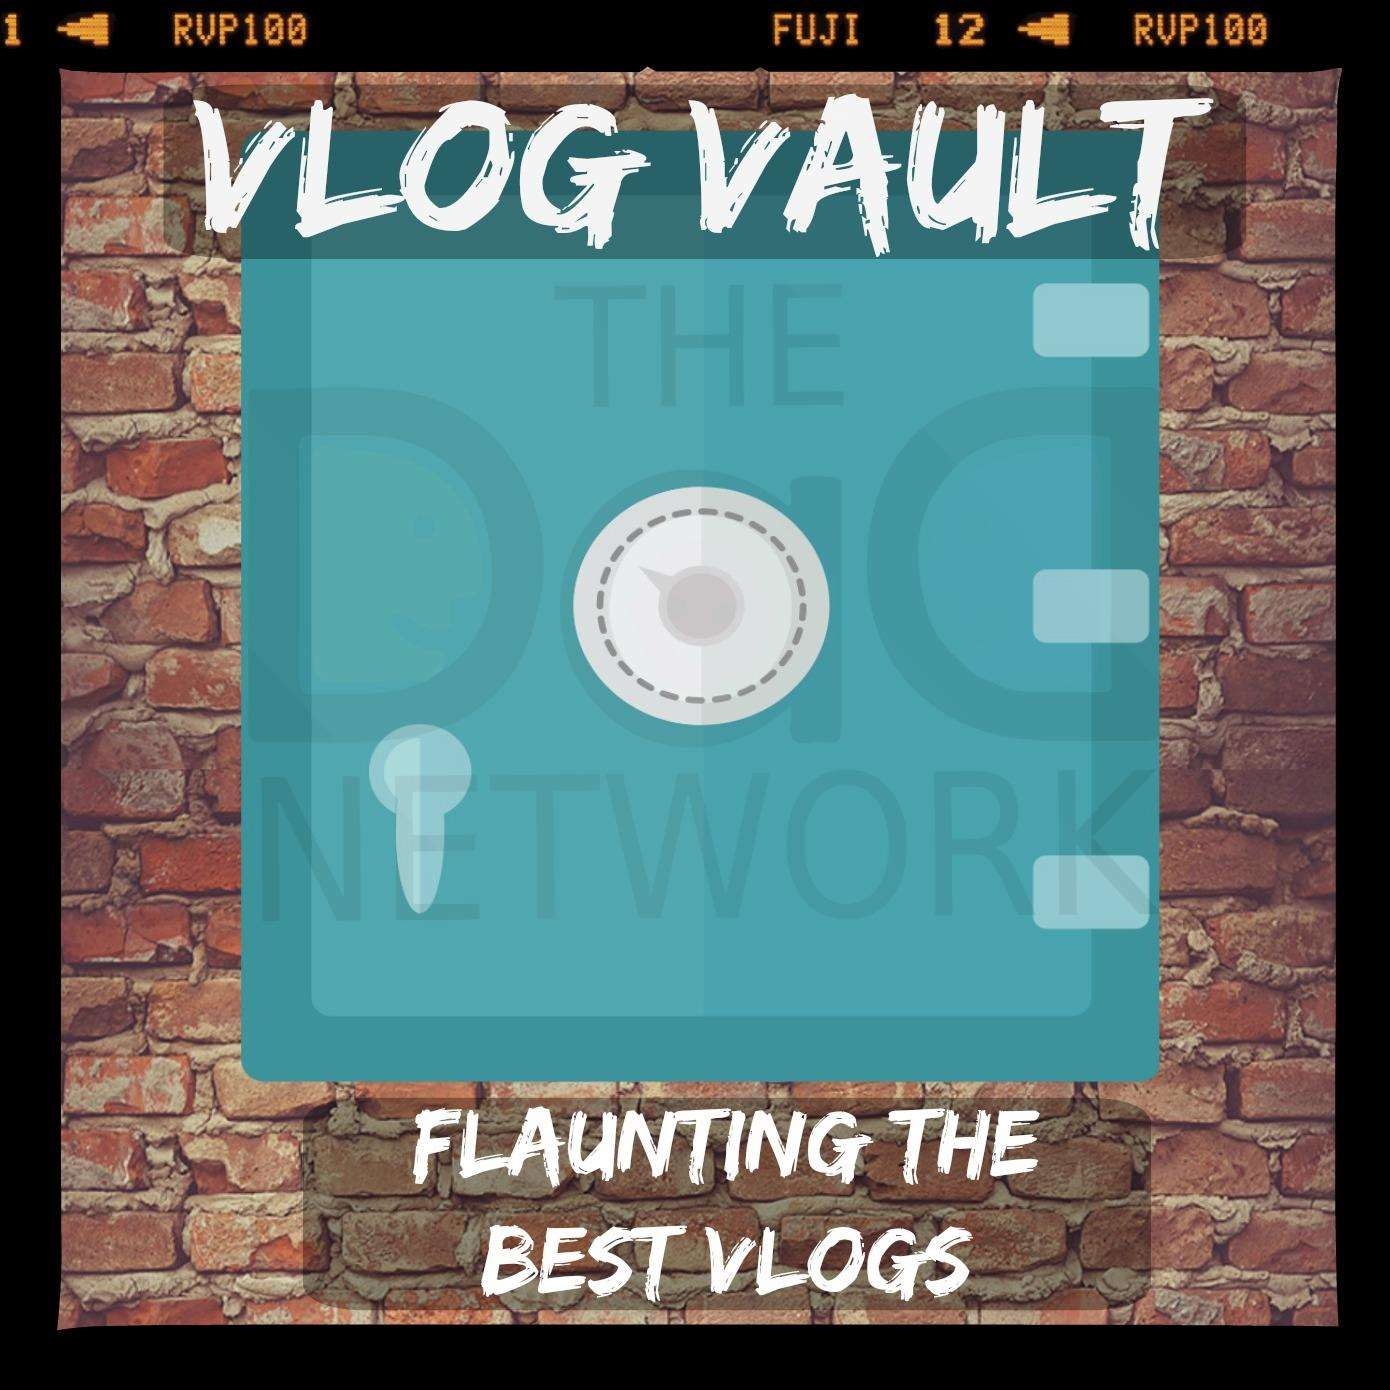 The Vlog Vault #2, Vlog Vault%, uncategorised%